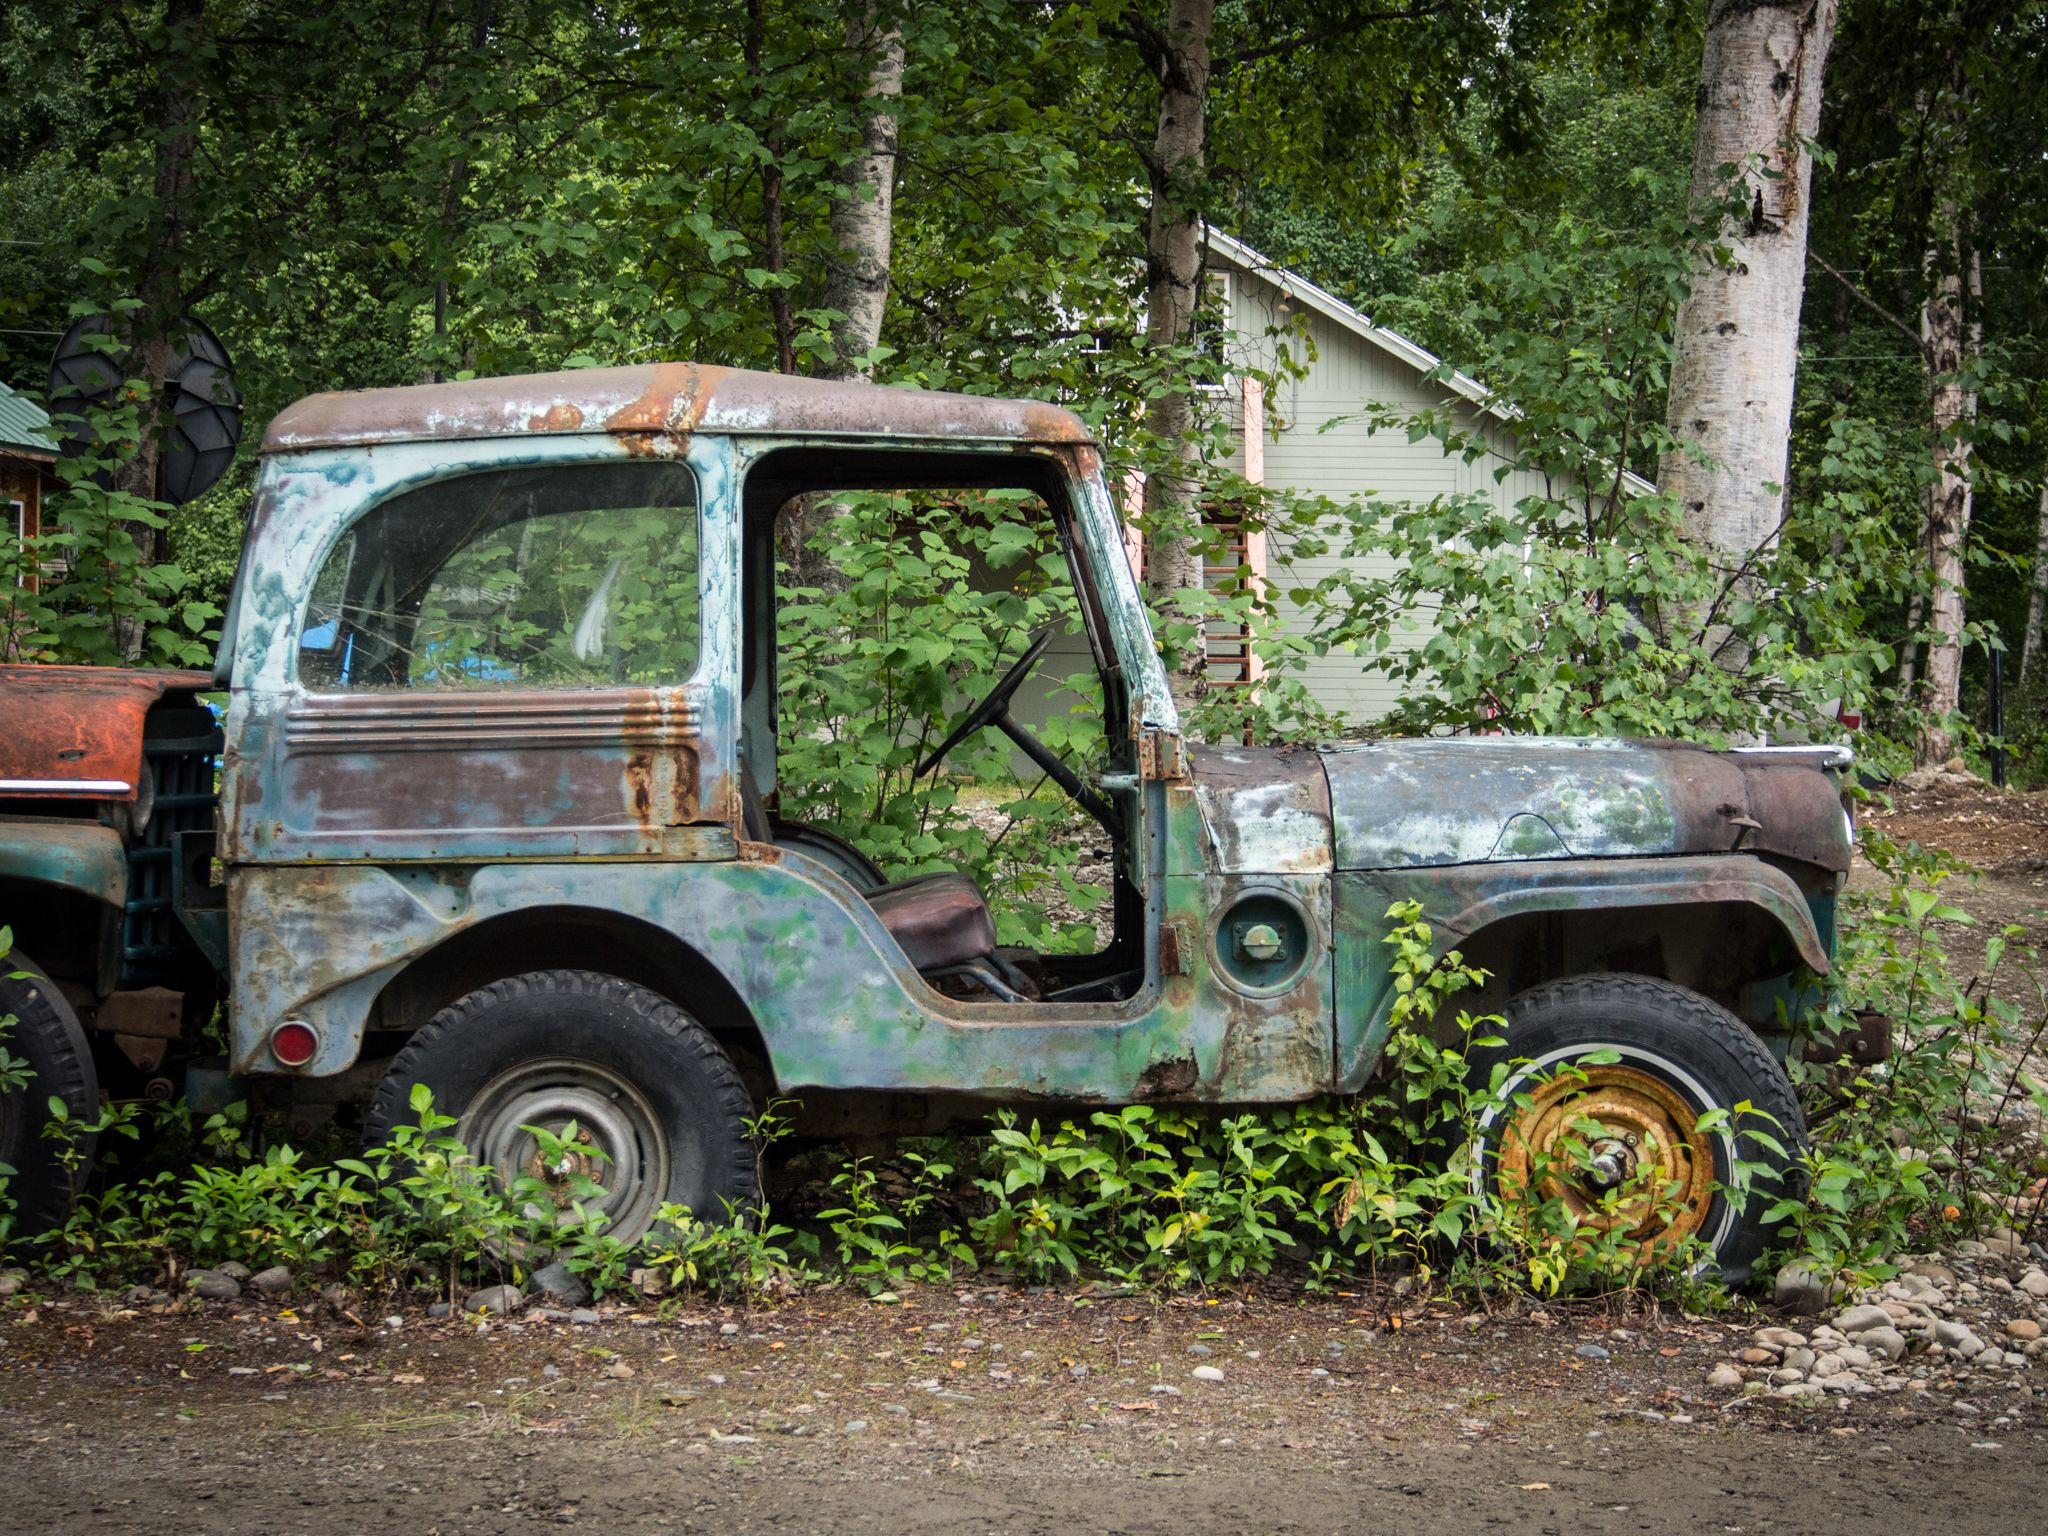 hight resolution of willys jeep m38a1 with custom hard top